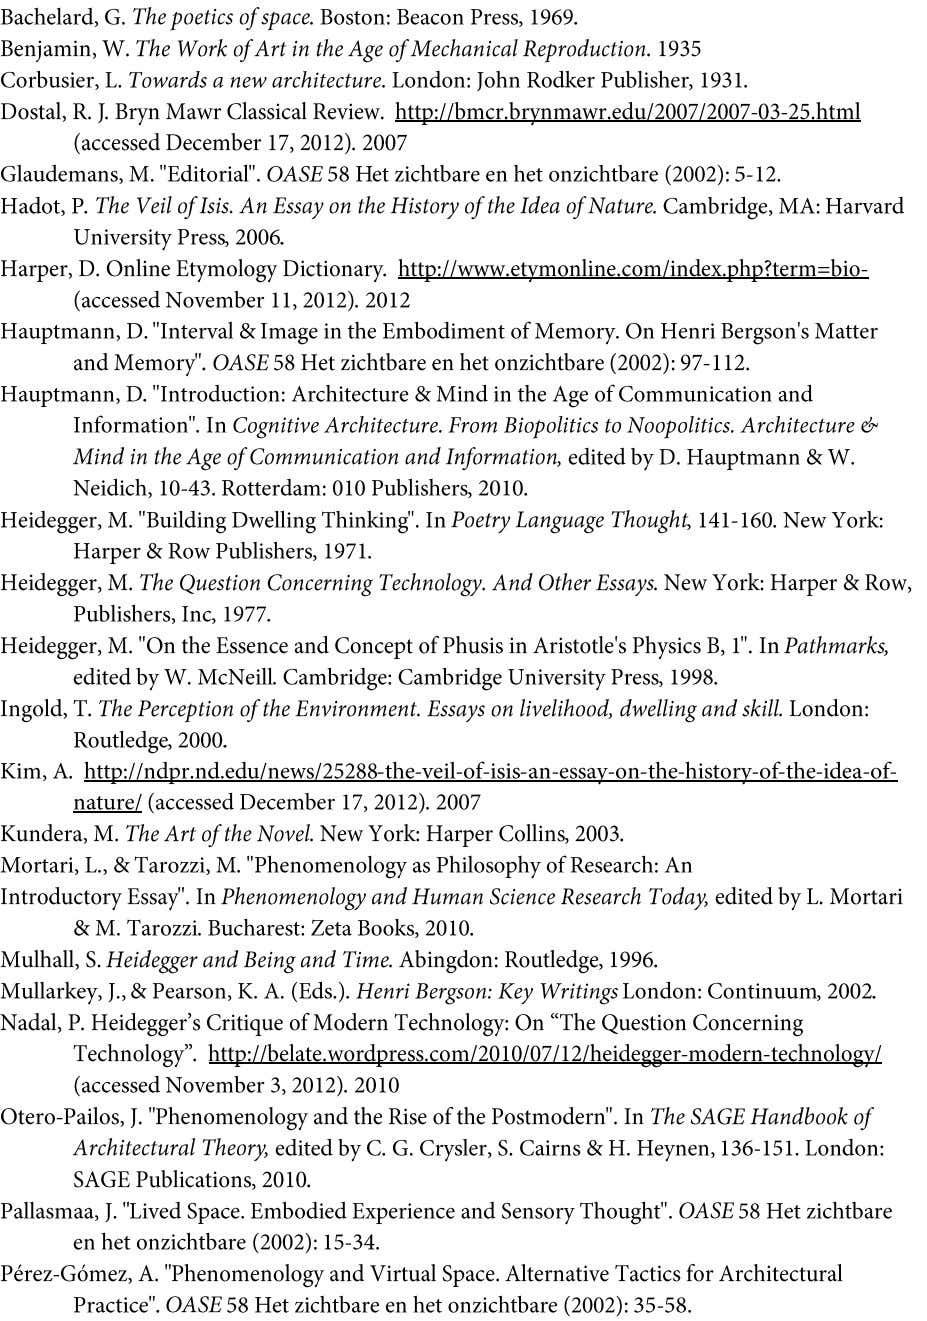 research bibliography 37